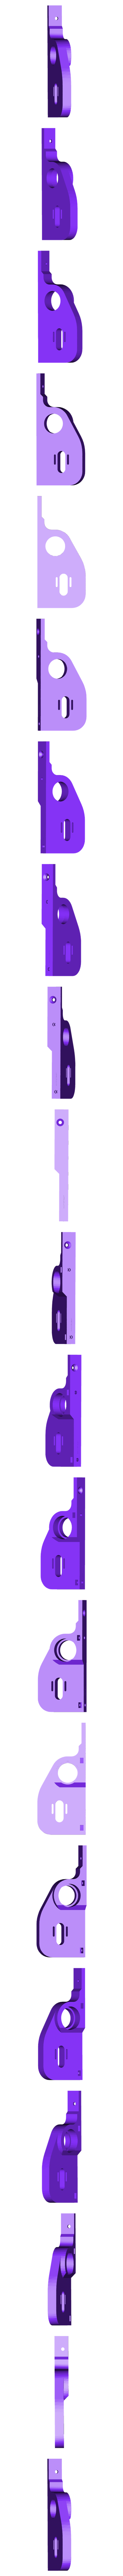 OpenRC_F1_250scaled_-_Rear_Axle_Holder_Right_v38-1.STL Download free STL file OpenRC F1 250% scaled • Template to 3D print, colorFabb